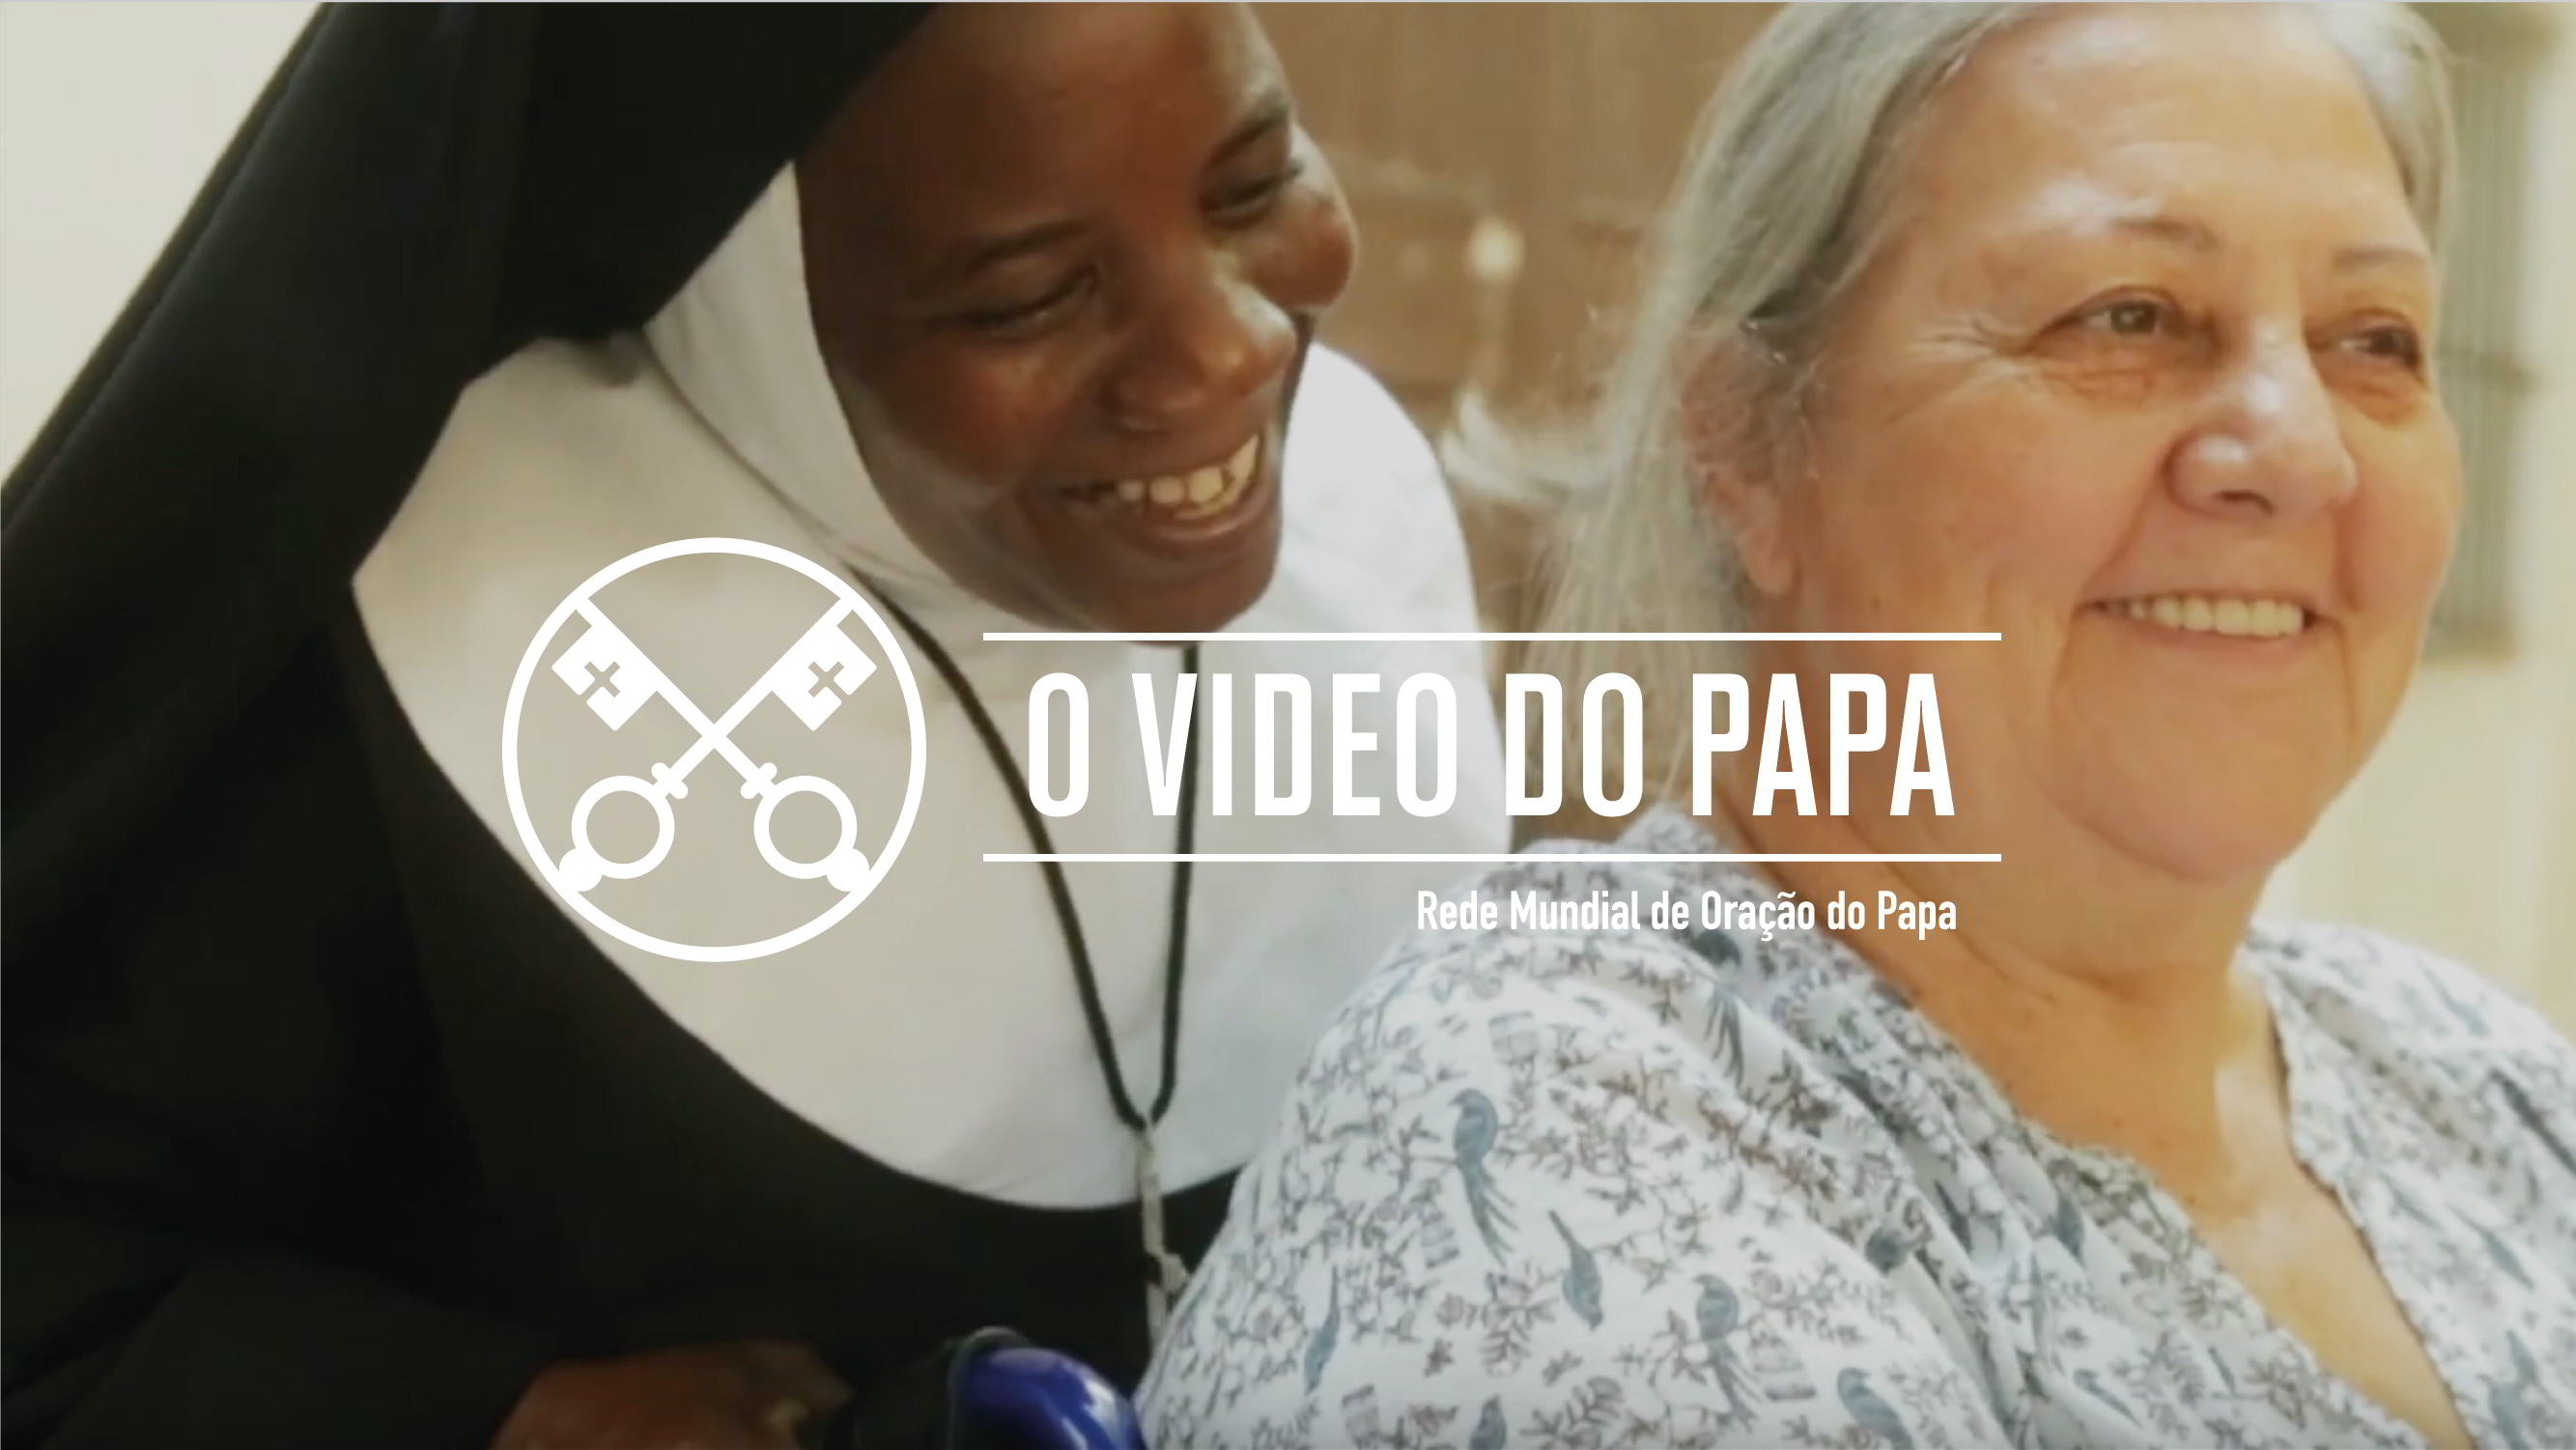 Official-Image-The-Pope-Video-10-2018-Mission-of-Religious-5-Portuguese